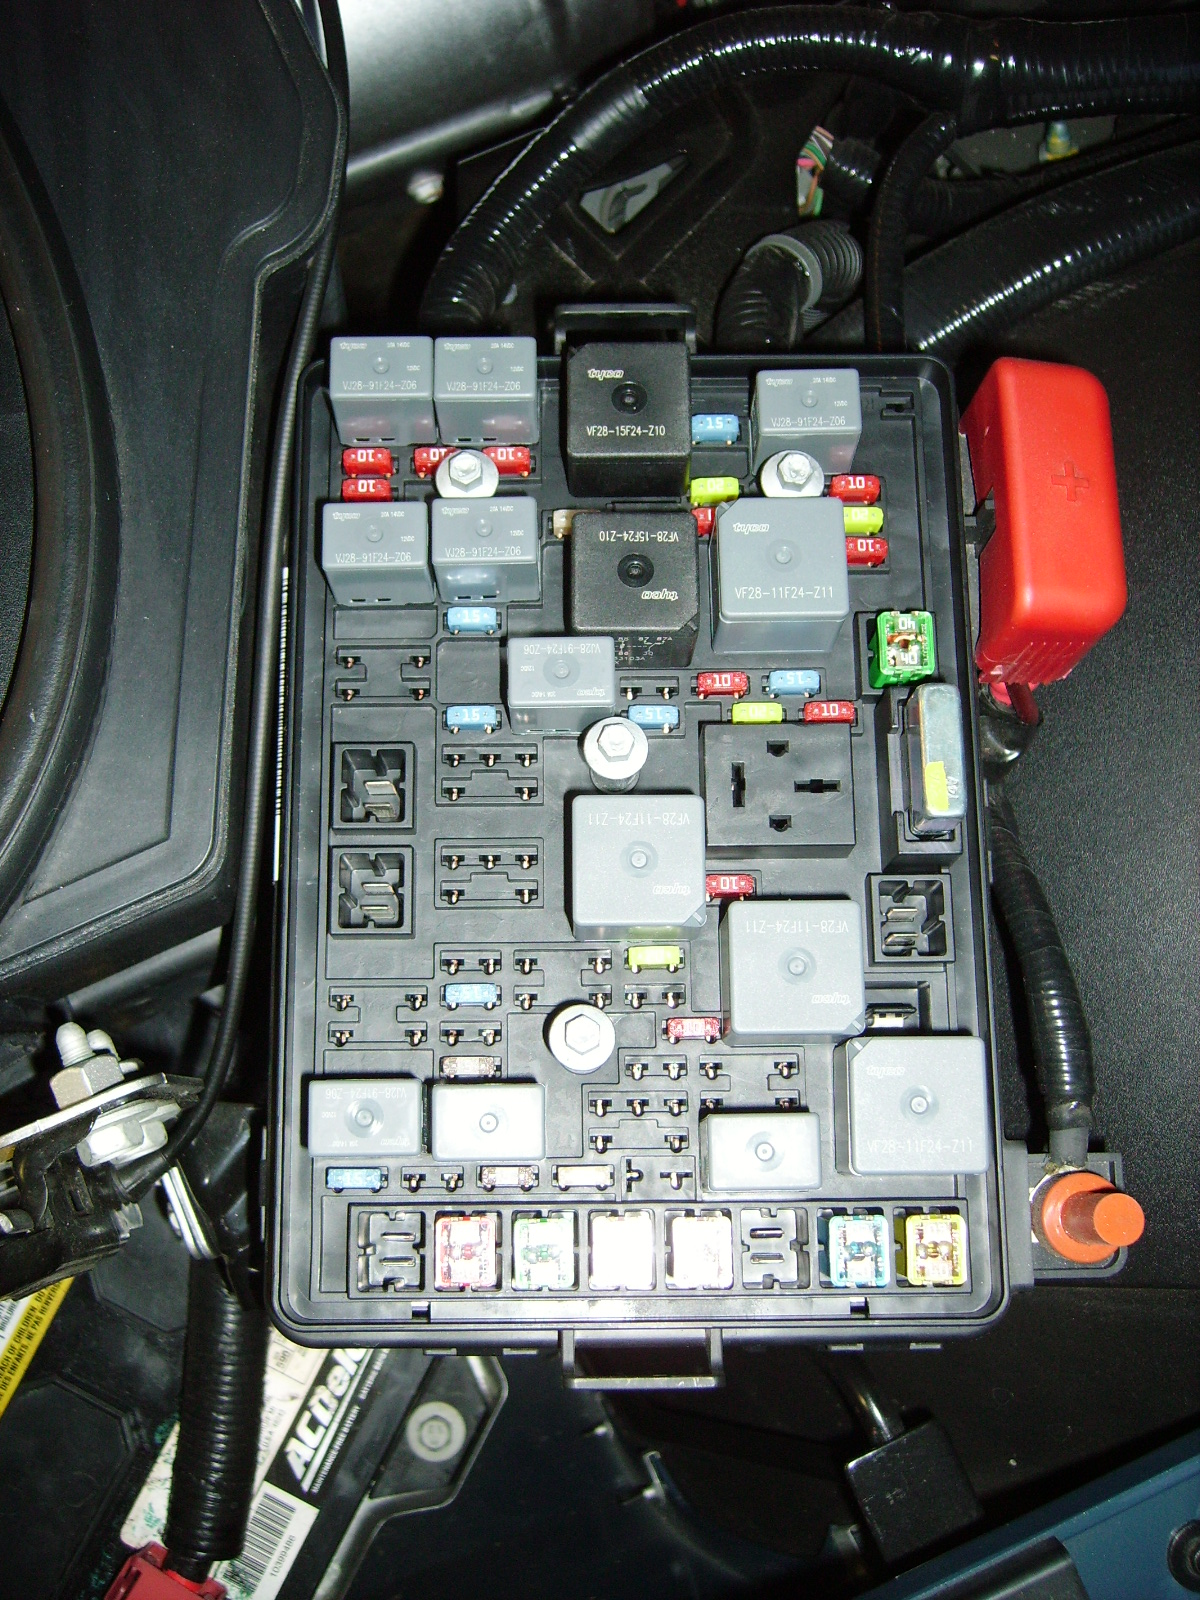 40354d1305120997 reverse light out fuse box under hood reverse light out? saturn sky forums saturn sky forum Bussmann Fuse Box Schematic Diagram at n-0.co